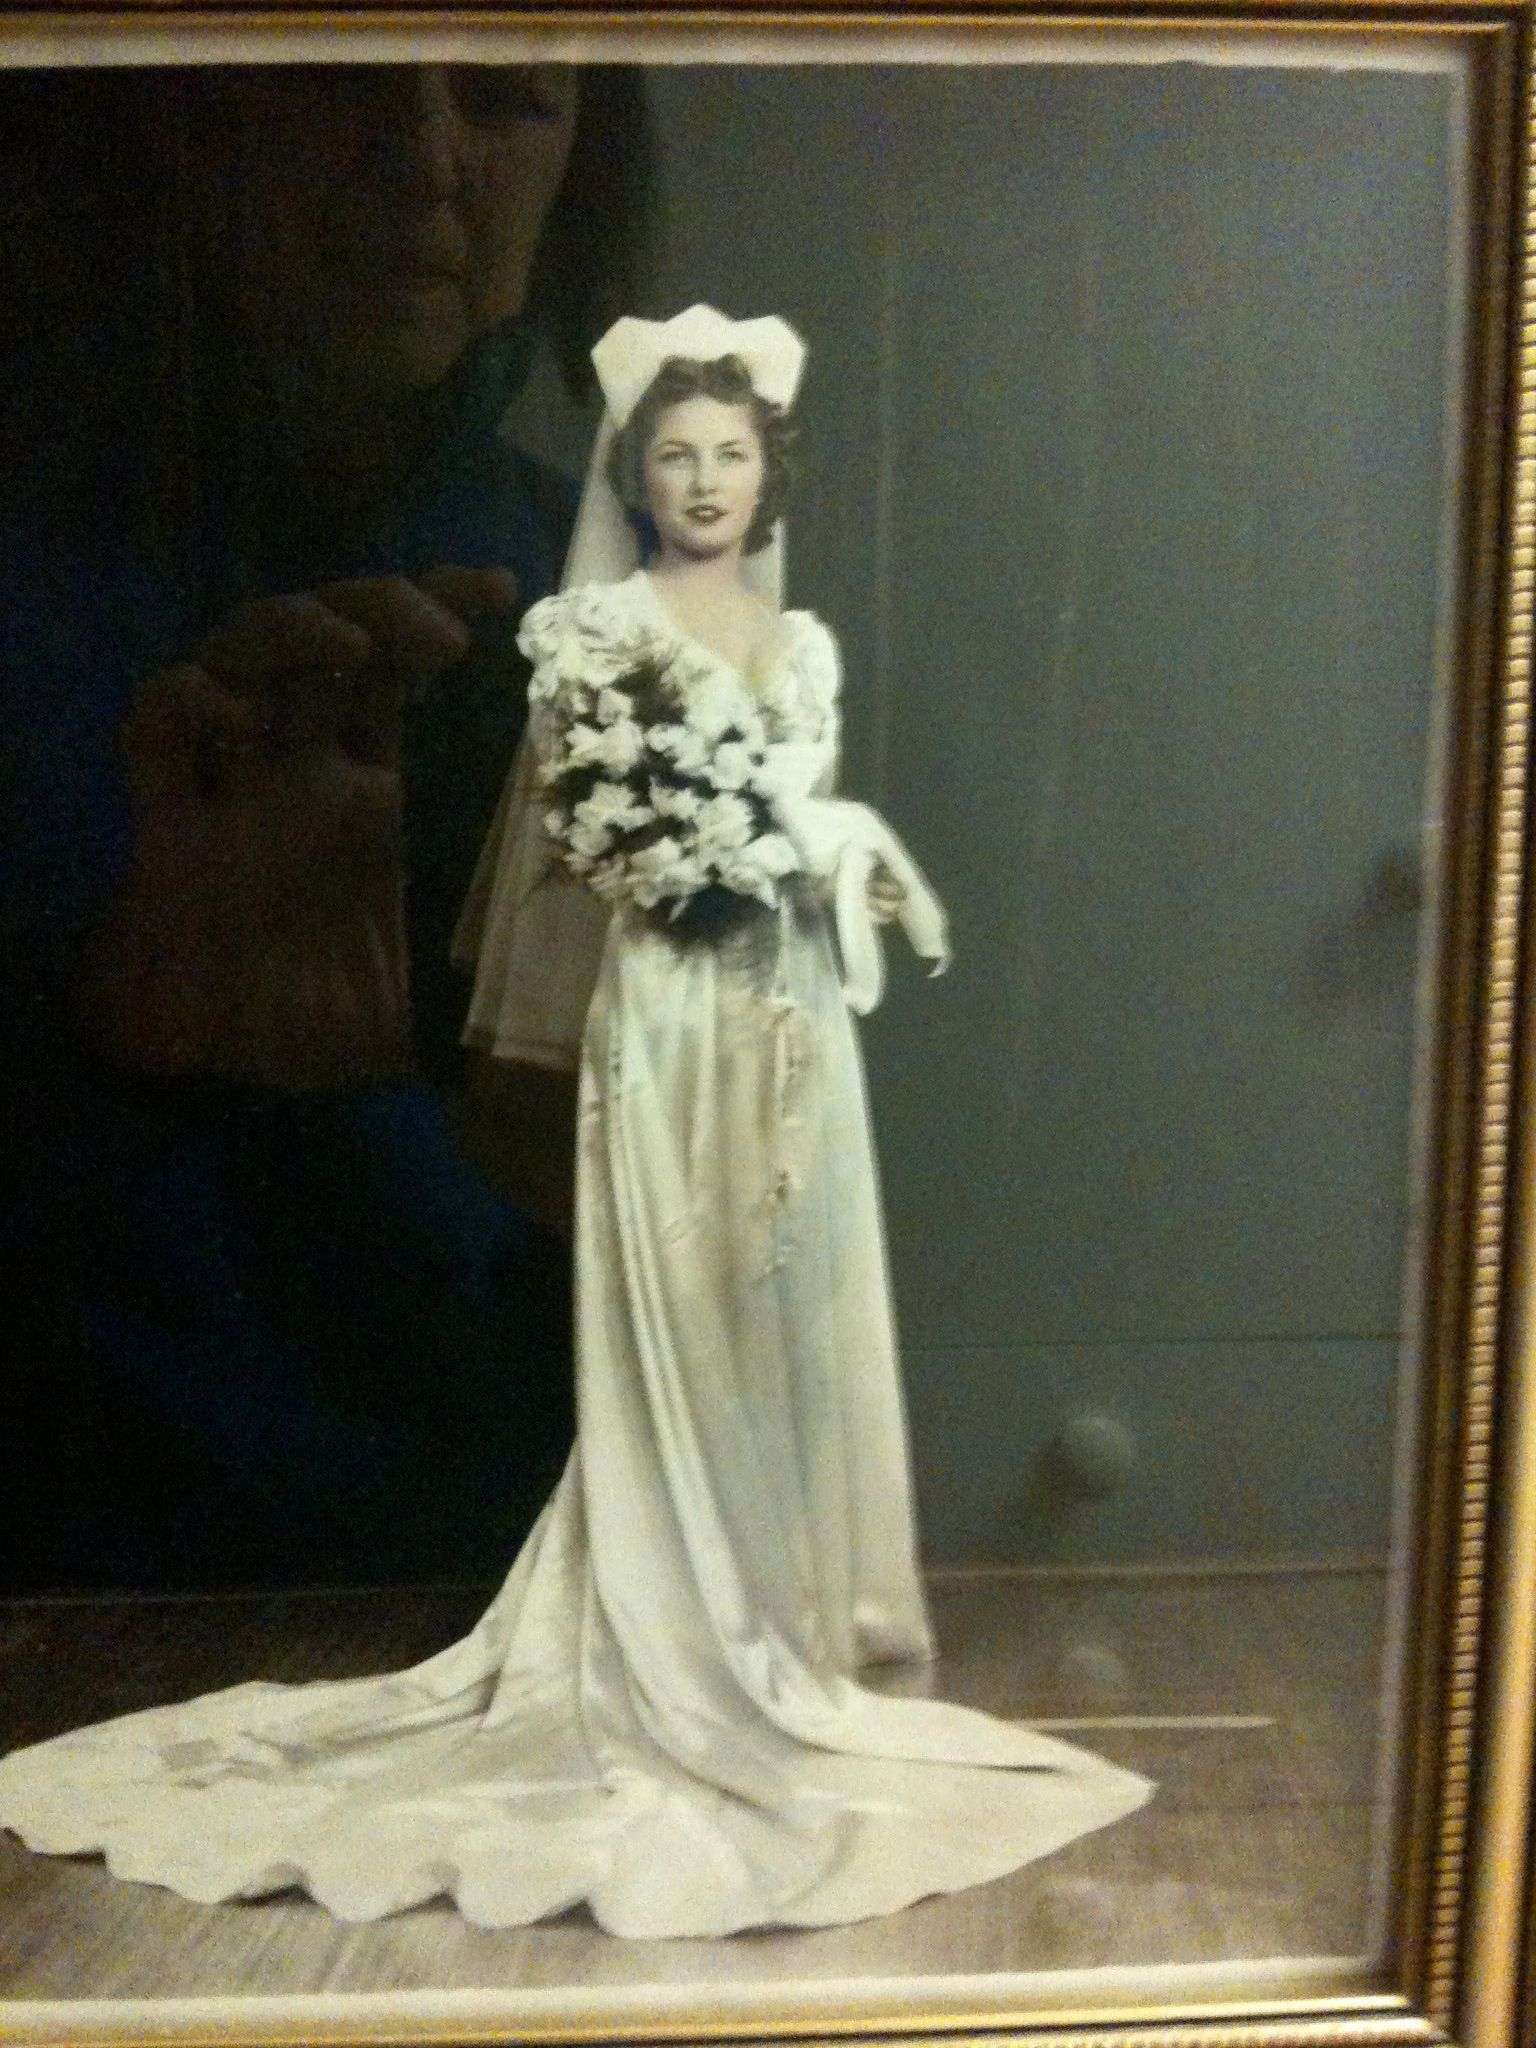 My maternal Grandmother Phyllis on her wedding day. Isn't she stunning?